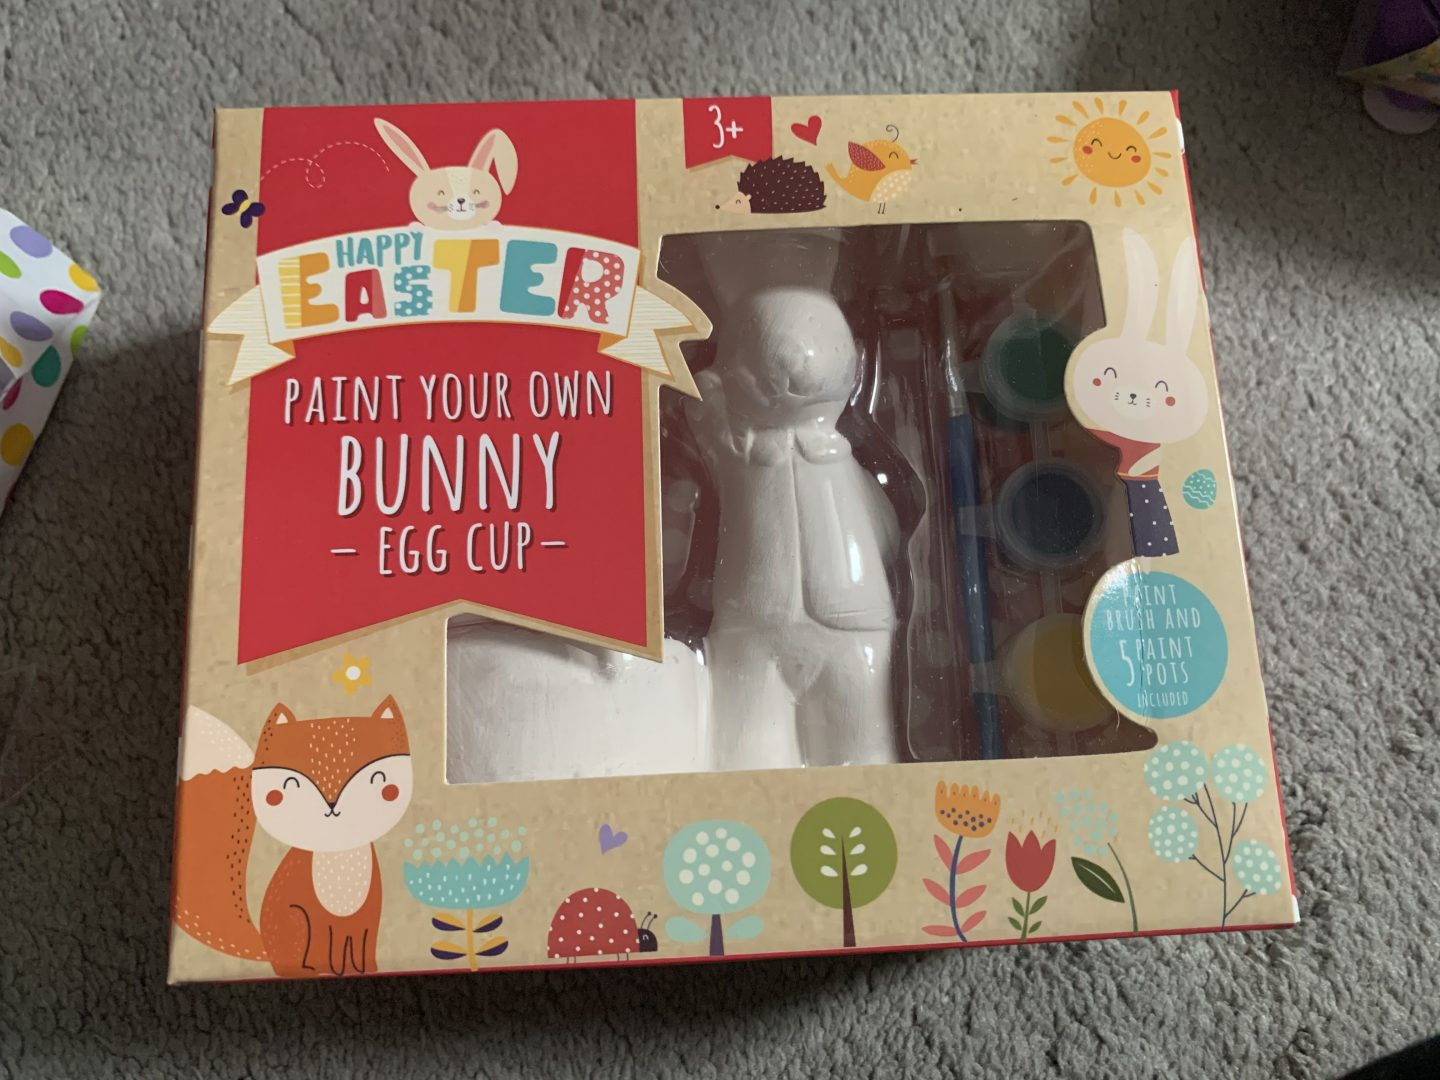 Paint your own bunny egg cup